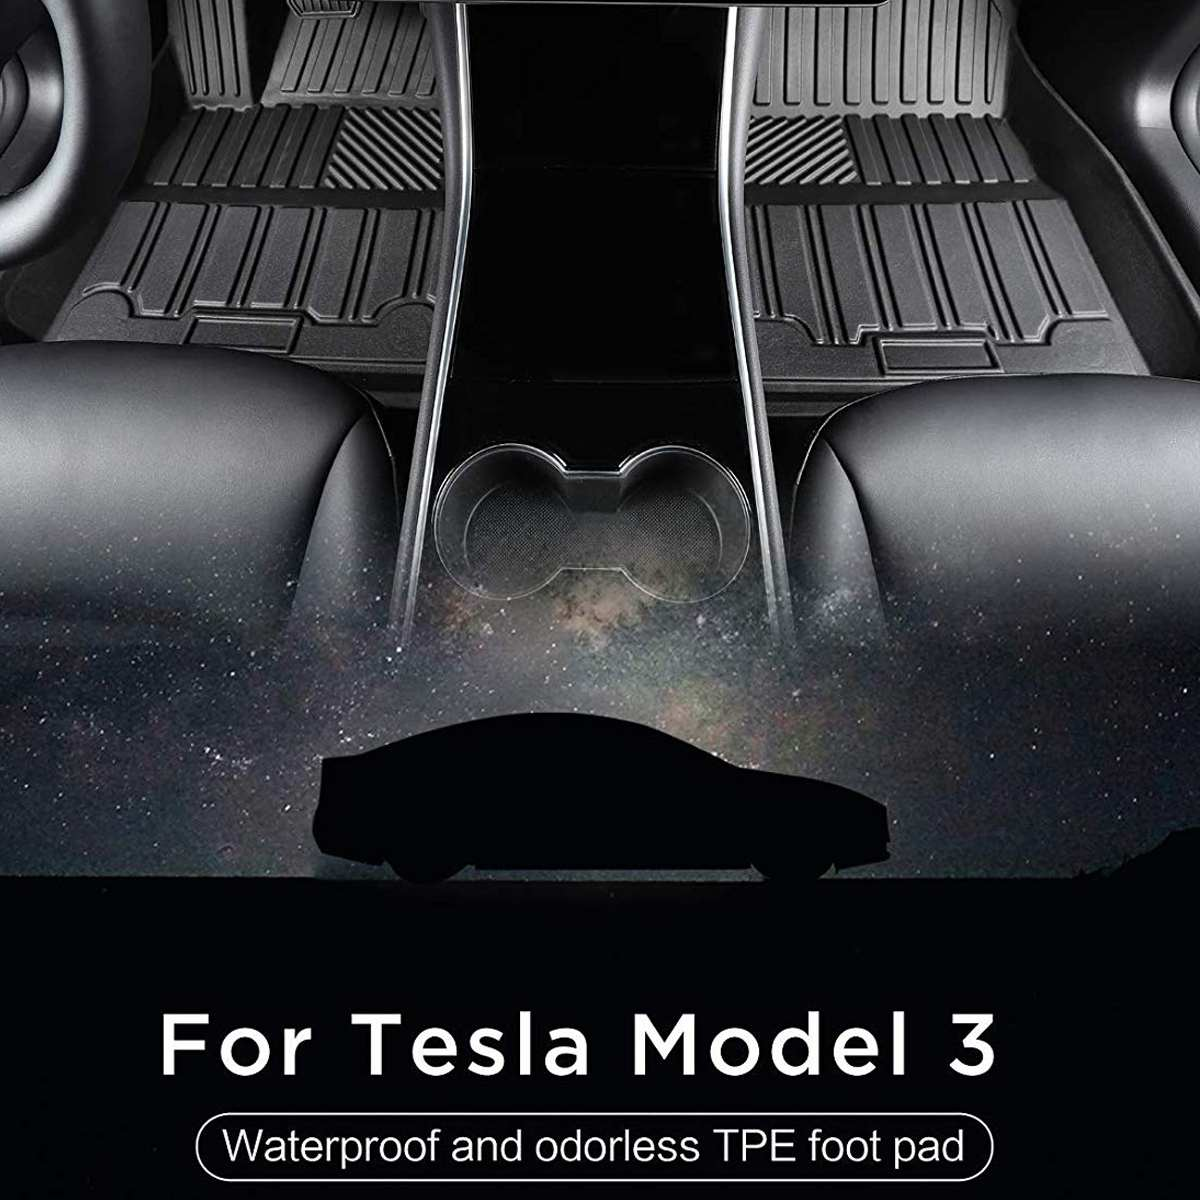 Audew Black TPE Waterproof Car Floor Mat Auto Interior Anti-dust Seat Cushion Mat Front Rear for Tesla Model 3 All-Weather Fits(China)